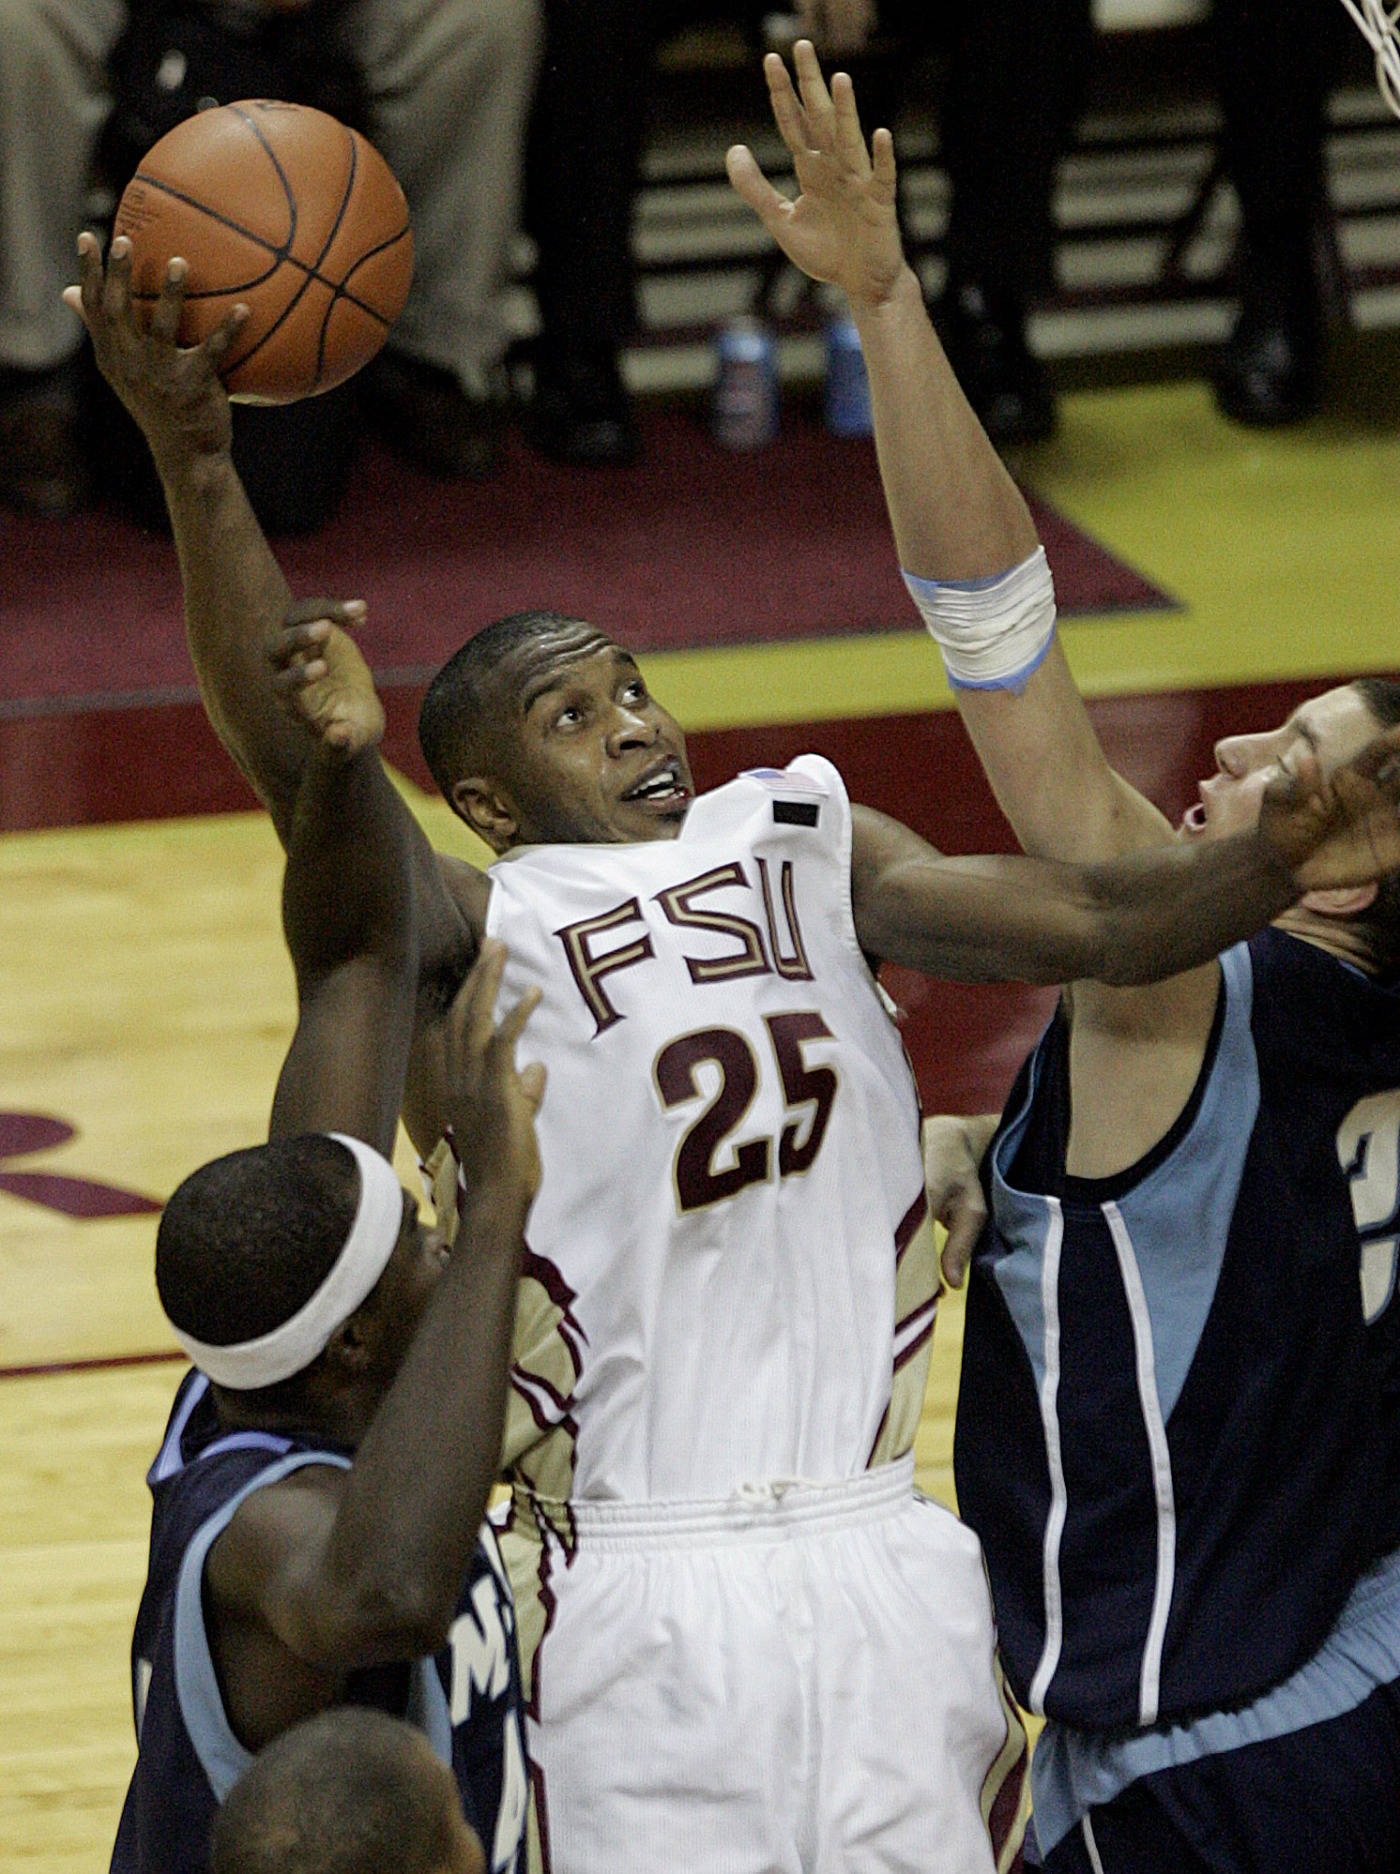 Florida State's Jason Rich is fouled in a shot attempt in the second half.